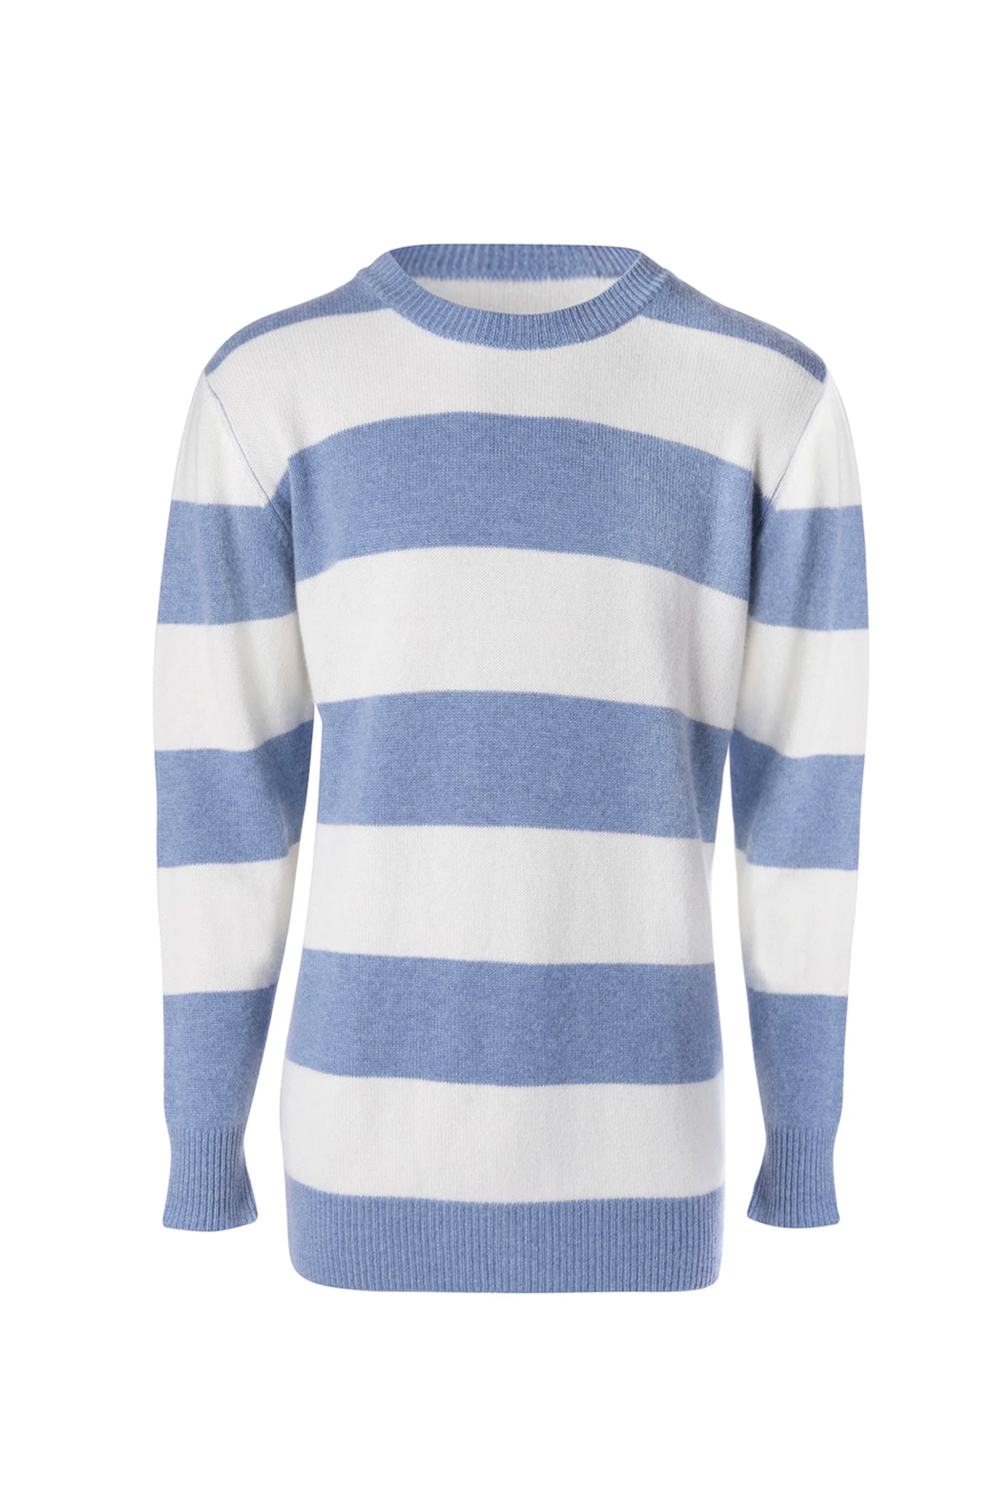 Unisex Blue and White Cashmere Jumper